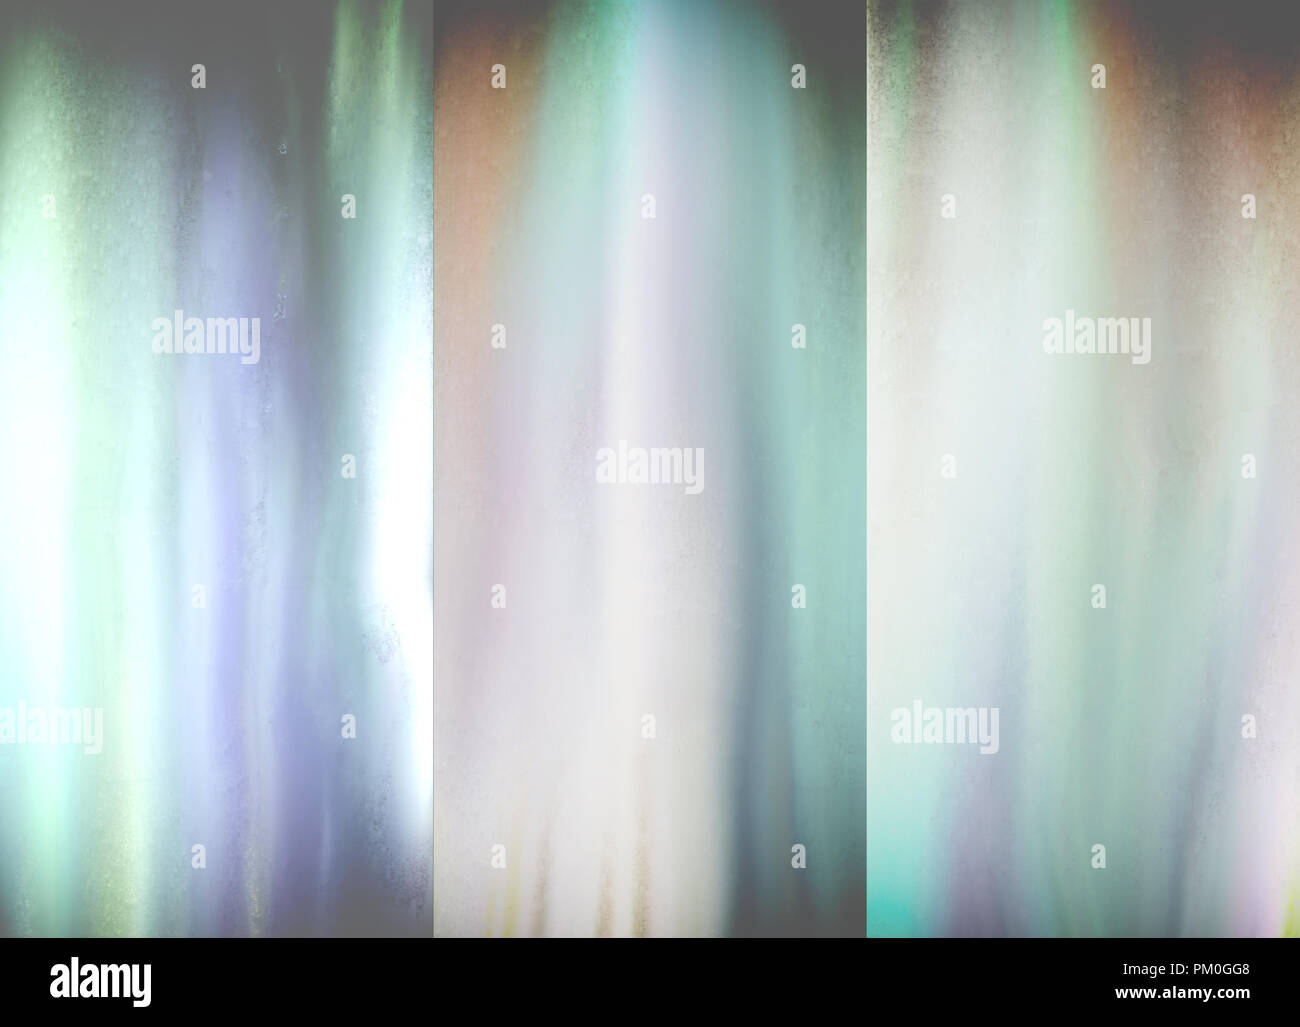 Abstract painting. Blurred soft light. - Stock Image